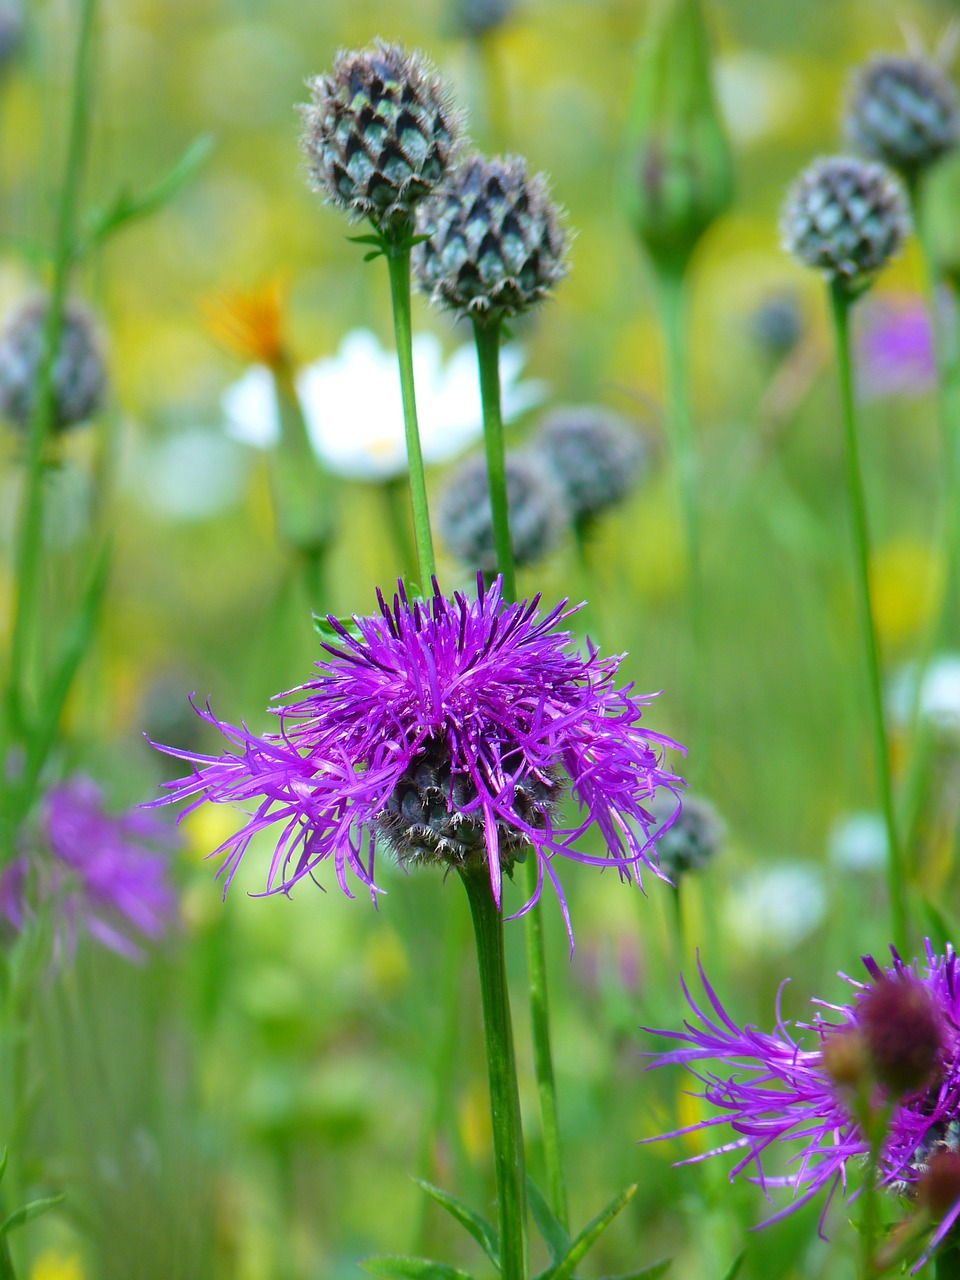 knapweed violet pointed flower free photo